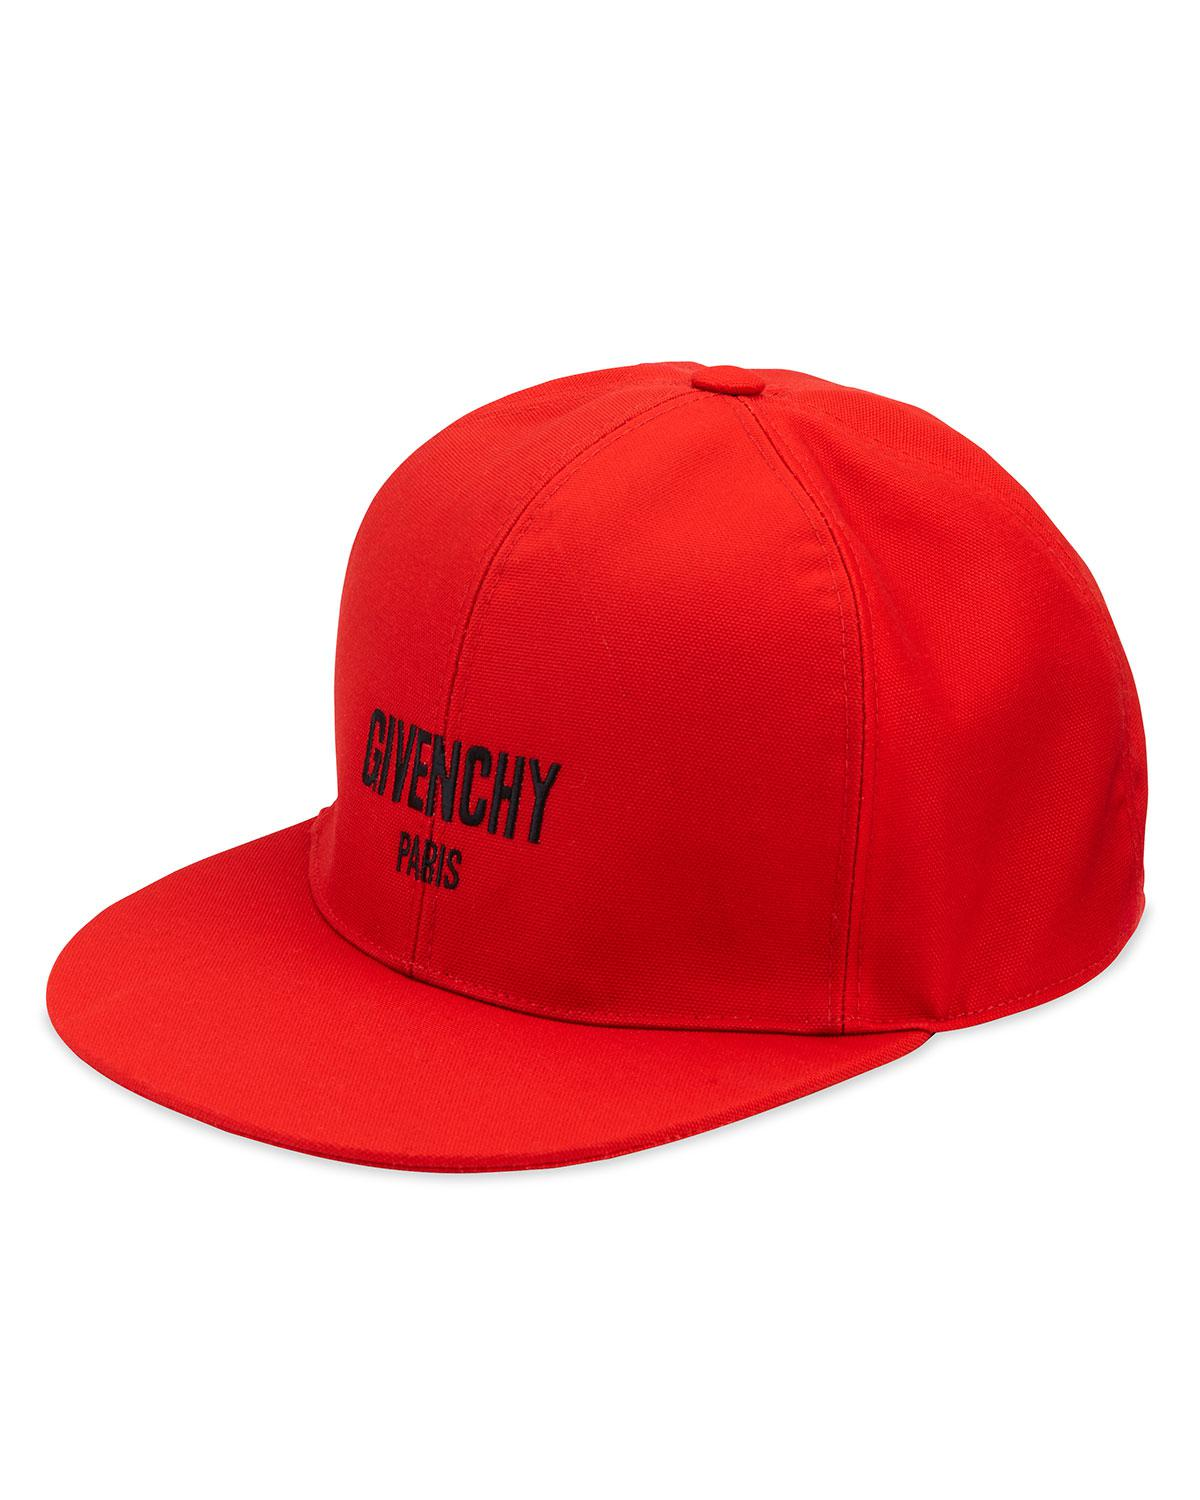 Lyst - Givenchy Canvas Baseball Cap in Red for Men - Save 50% 17a1fa104432